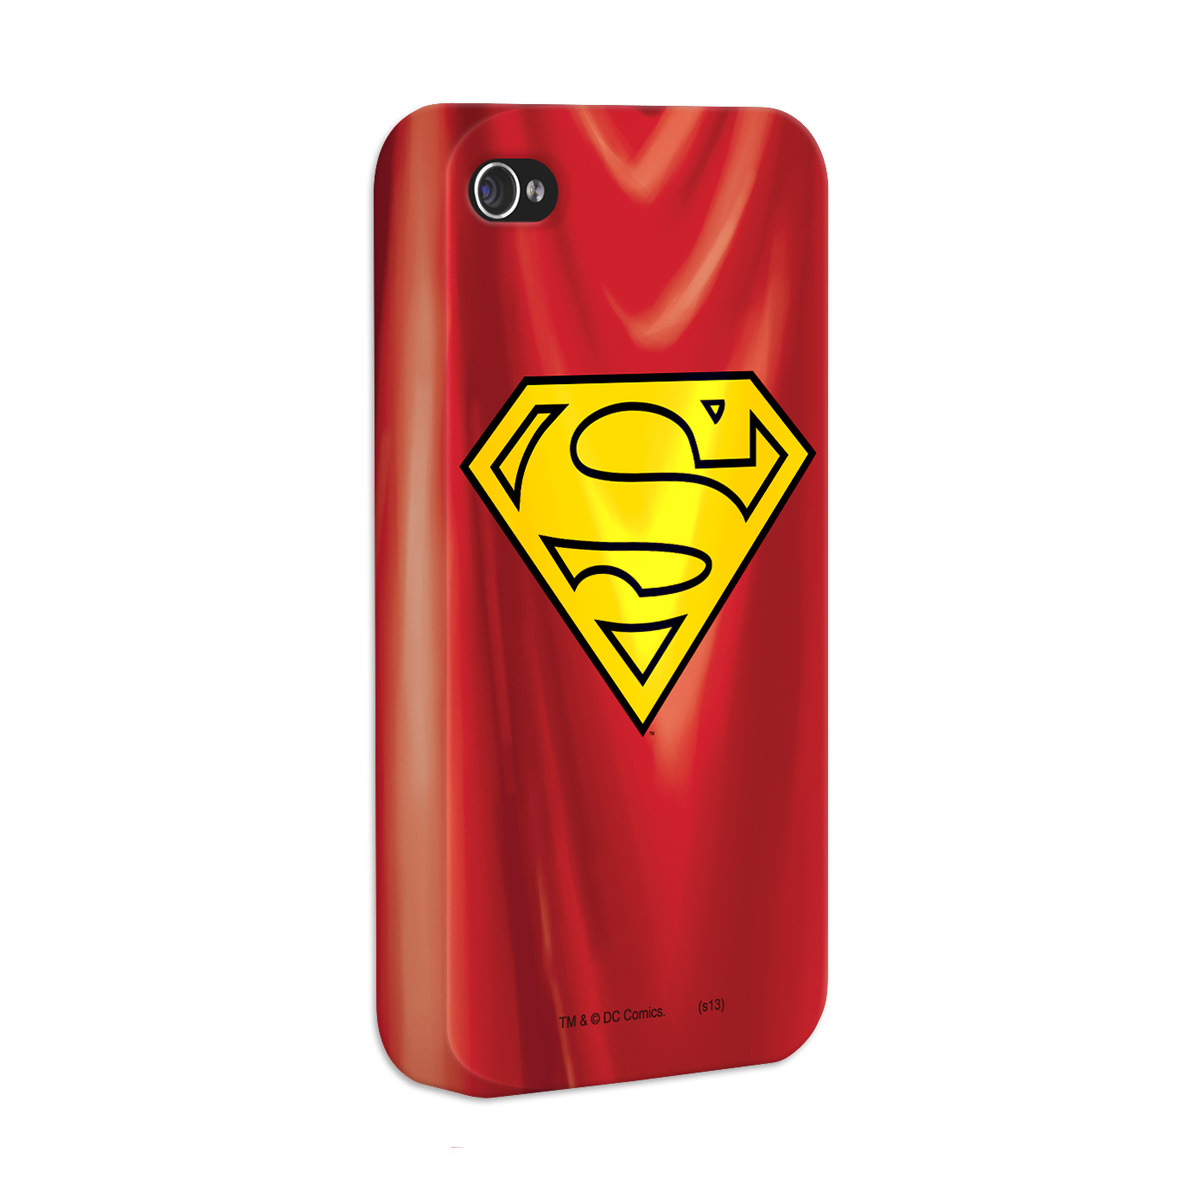 Capa de iPhone 4/4S Superman - Capa